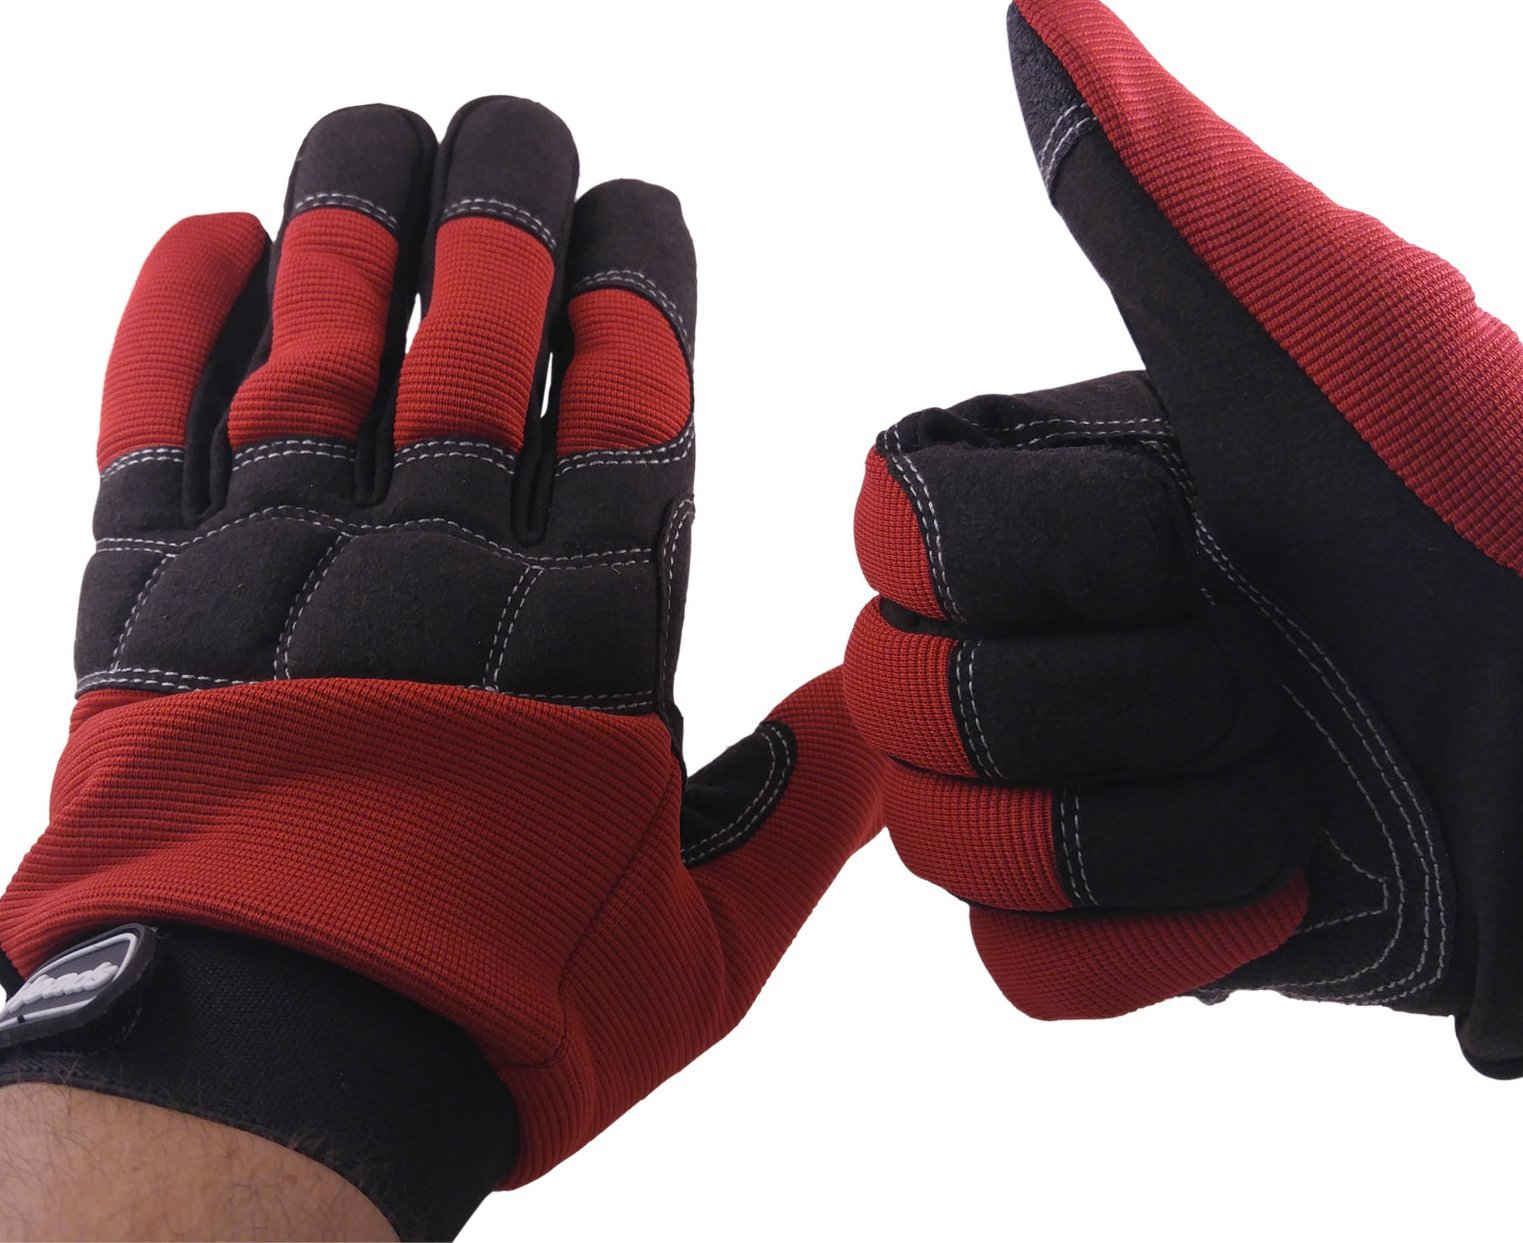 MECHANIC GLOVES For Working On Cars - Work Safety Gloves Protect Fingers And Hands - Large Size Fits Most Men, 1 Pair by RevHeads (Image #7)